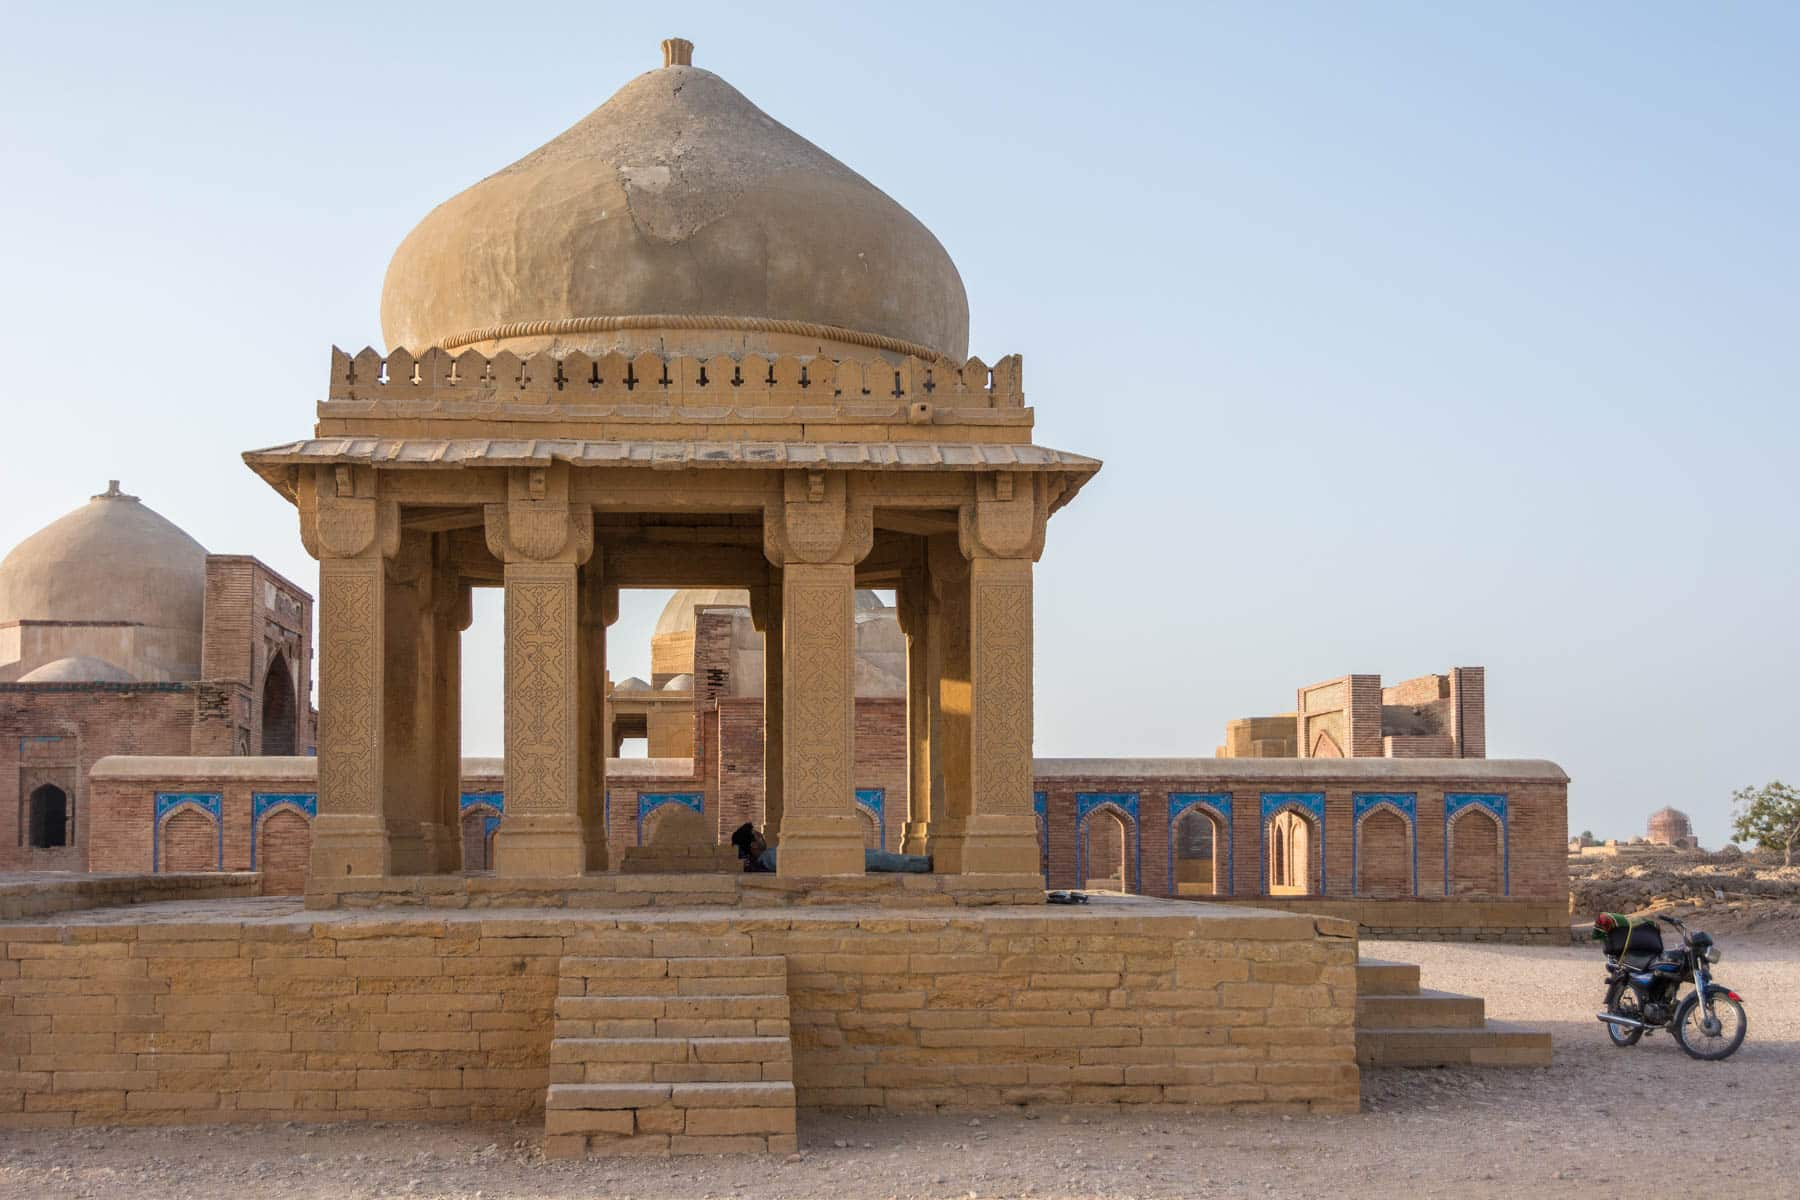 Sindh travel guide - Tomb at Makli Hill Necropolis - Lost With Purpose travel blog